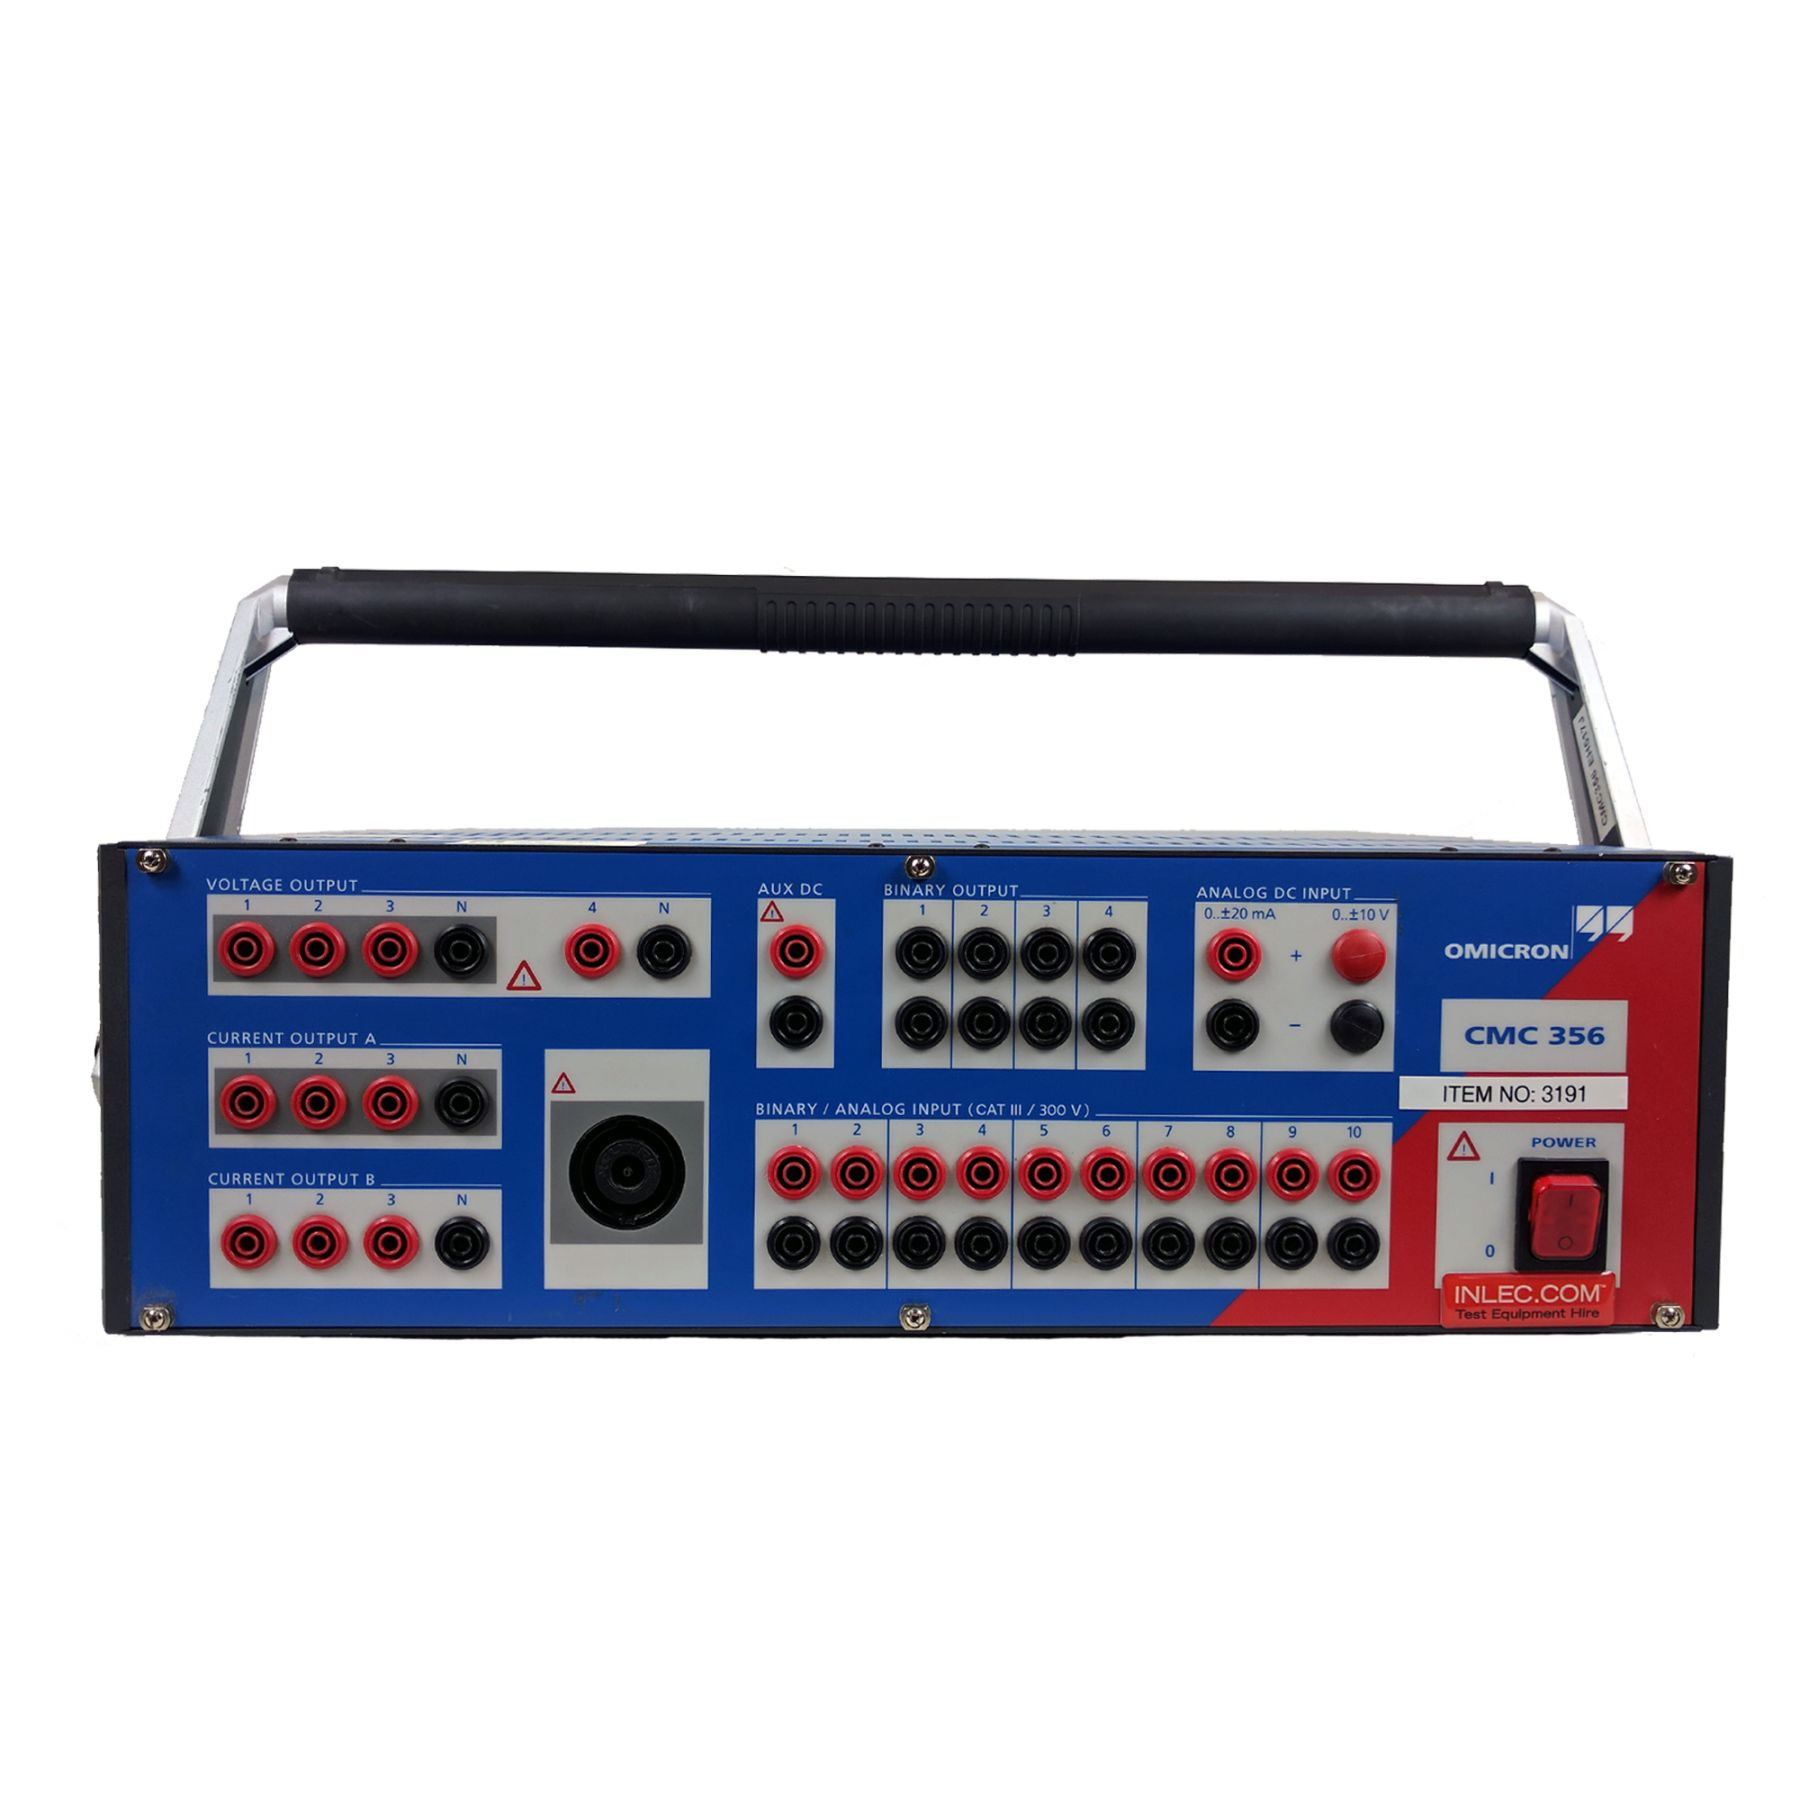 Omicron Cmc 356 Relay Test Set Hire Inlec Current Input Cmc356 With Advanced Protection Software